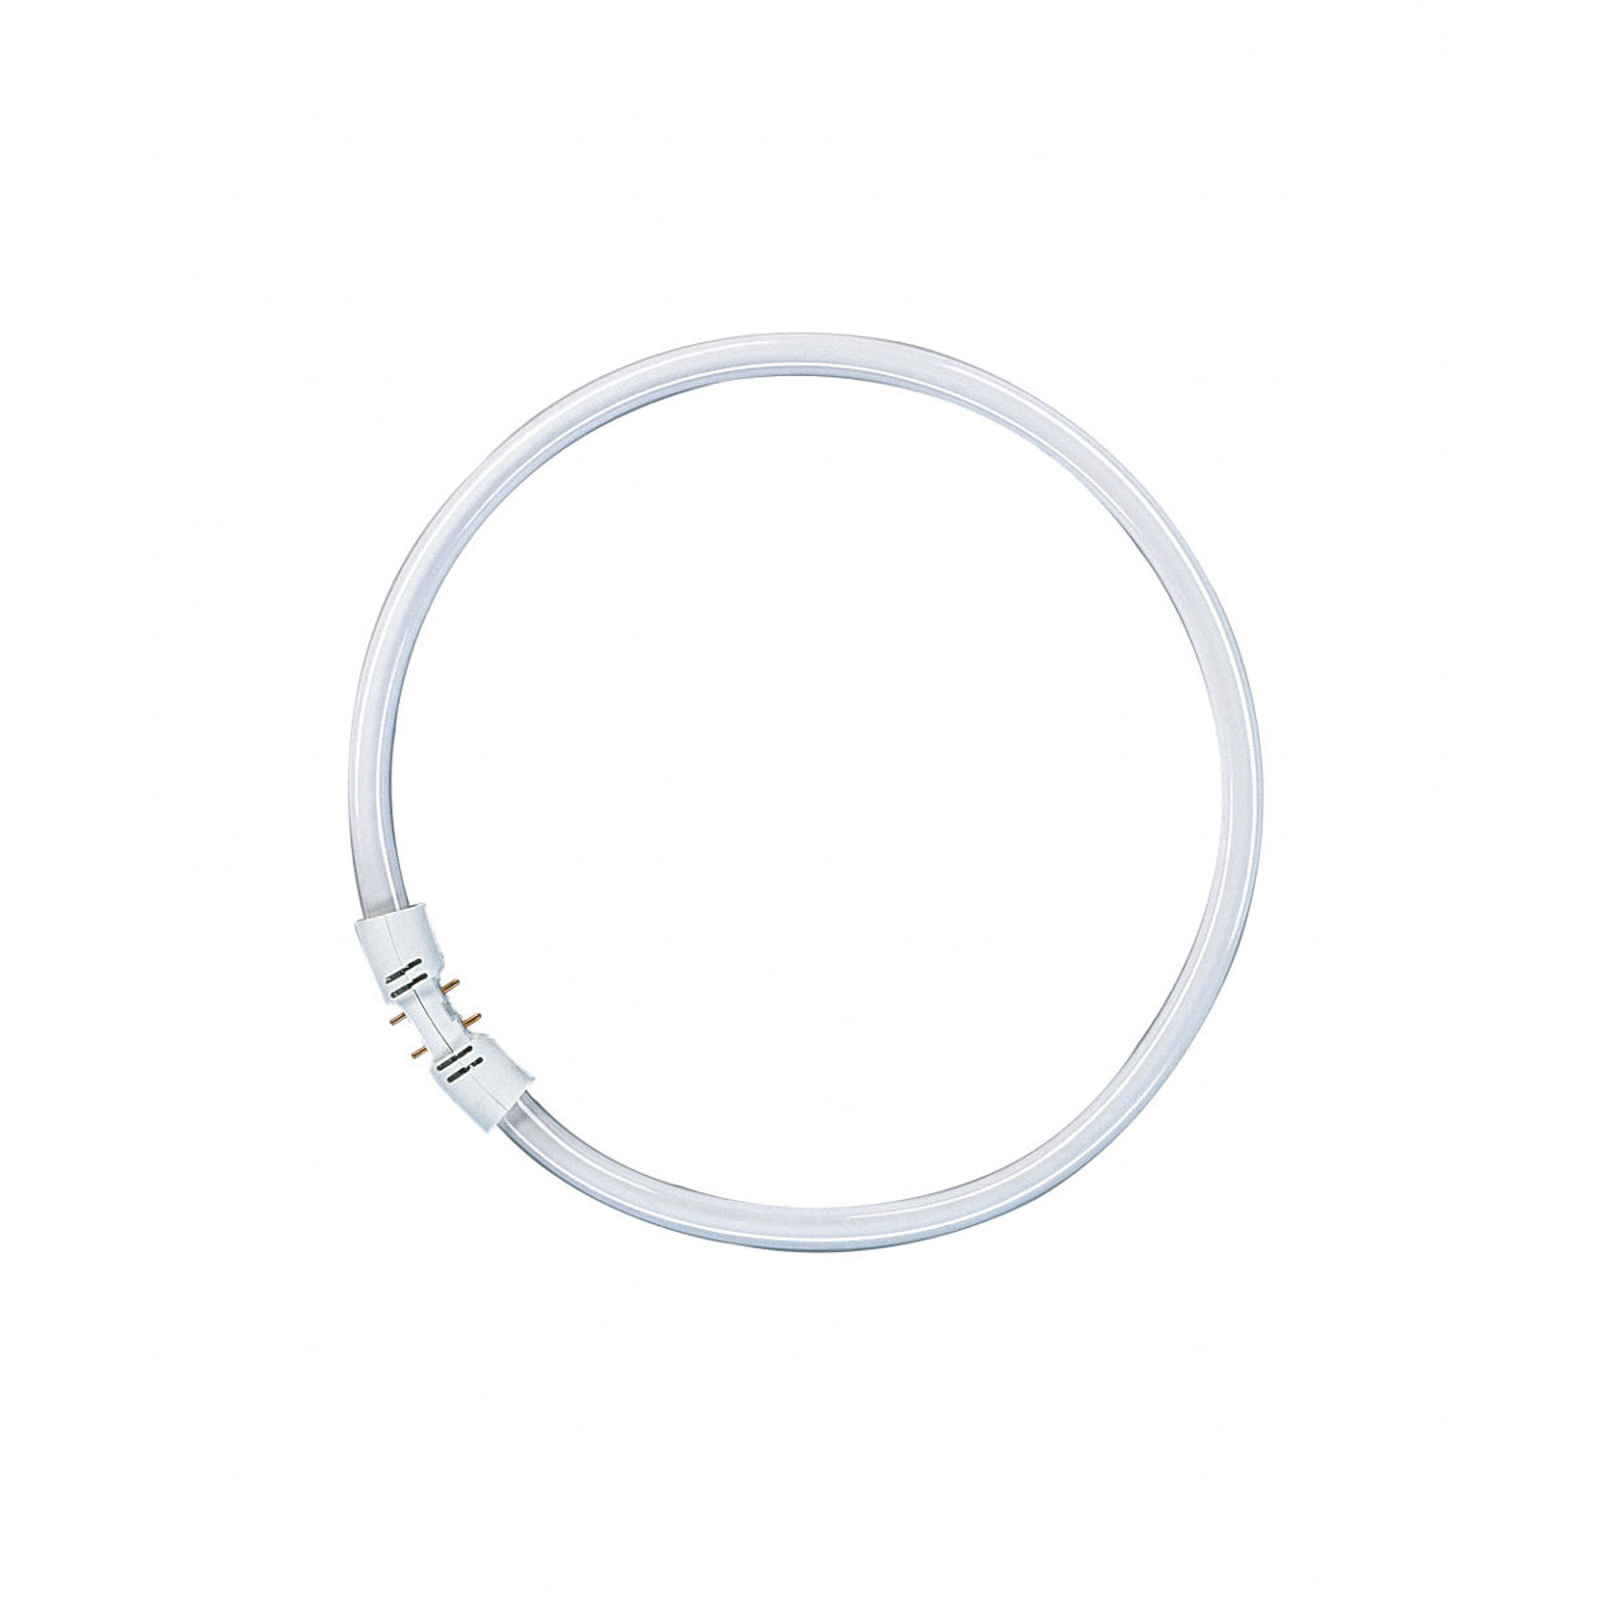 2Gx13 LUMILUX T5 Ring-Leuchtstofflampe 40W 865